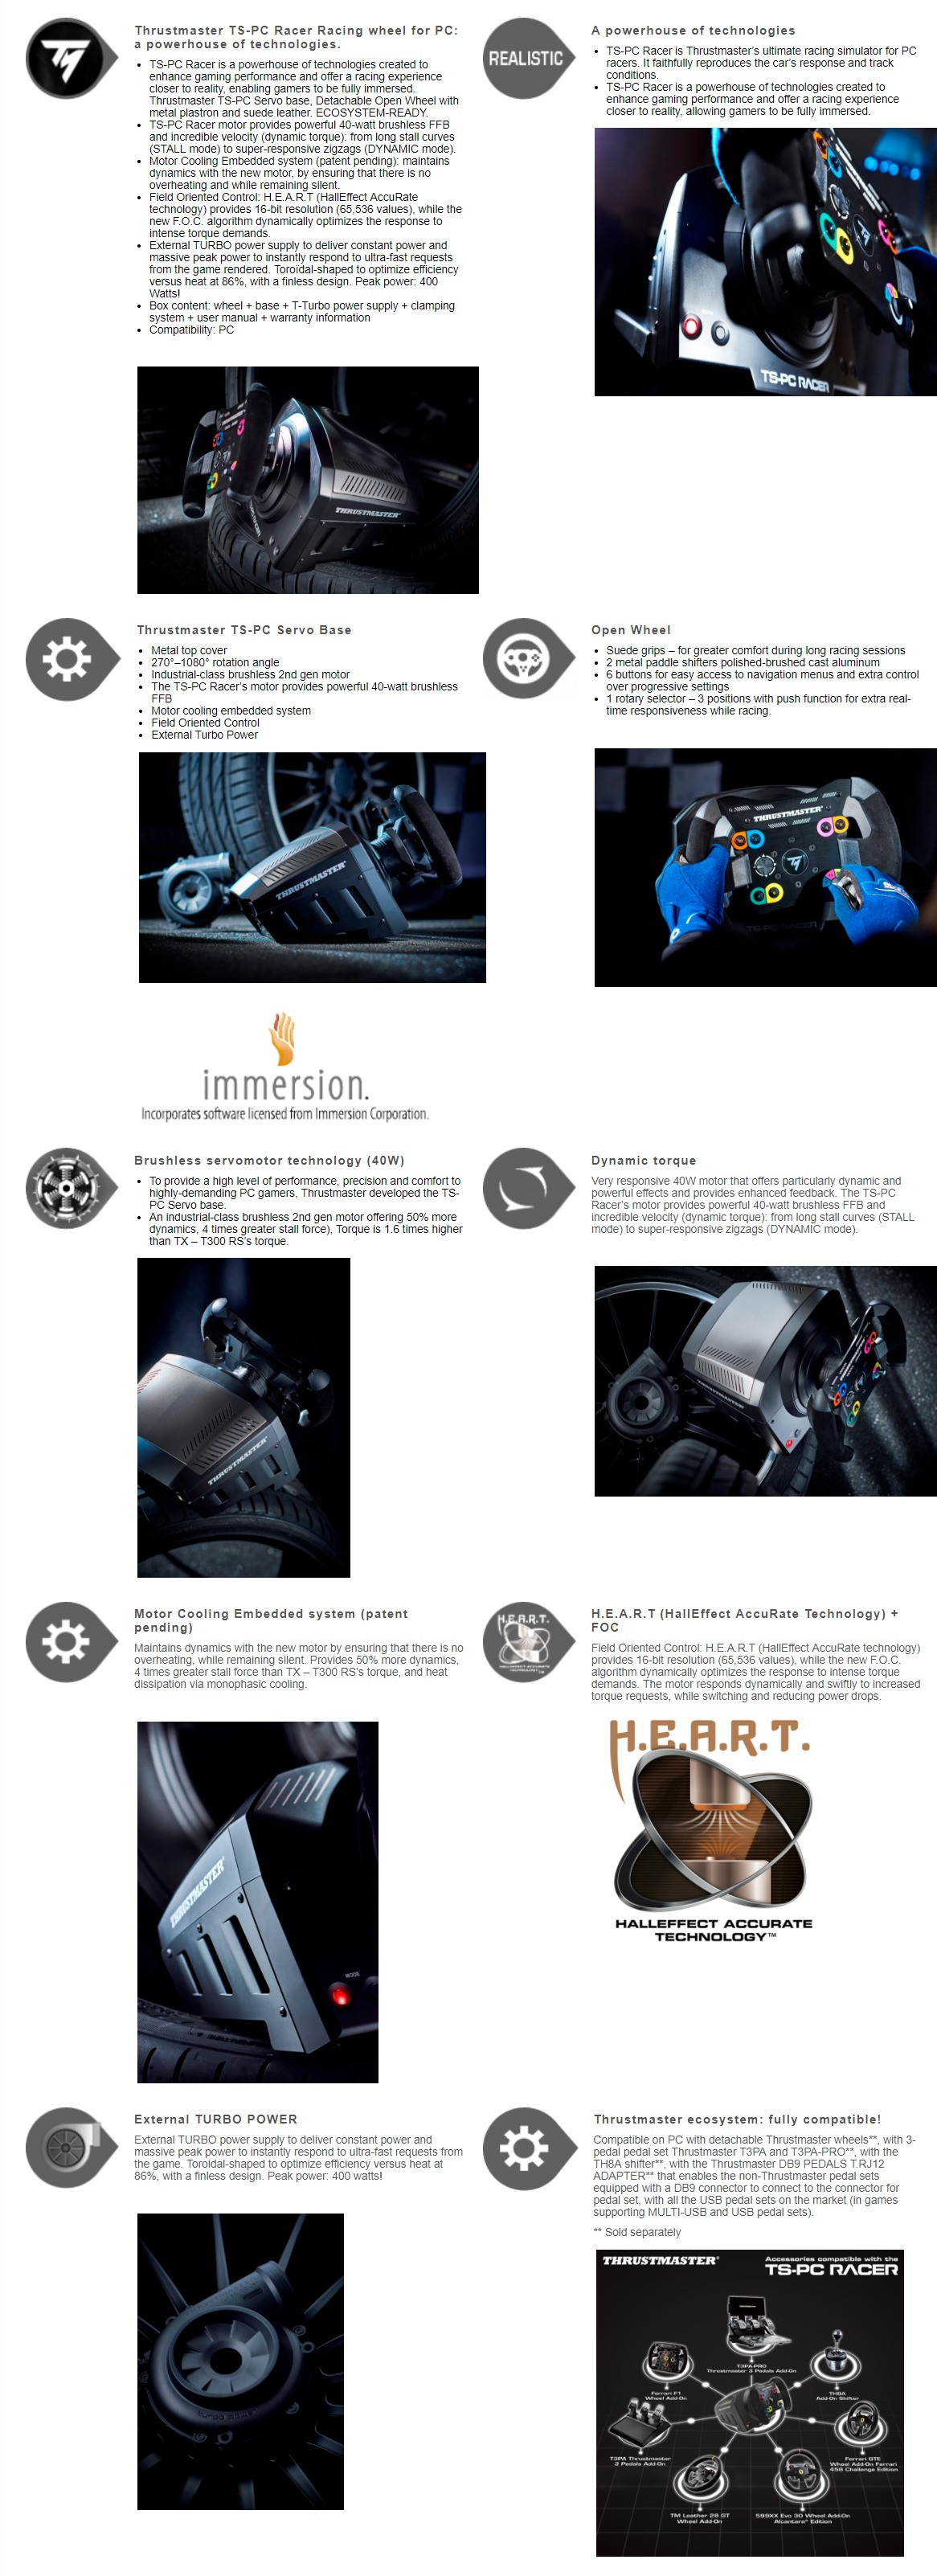 A large marketing image providing additional information about the product Thrustmaster TS-PC Racer Force Feedback Racing Wheel For PC - Additional alt info not provided